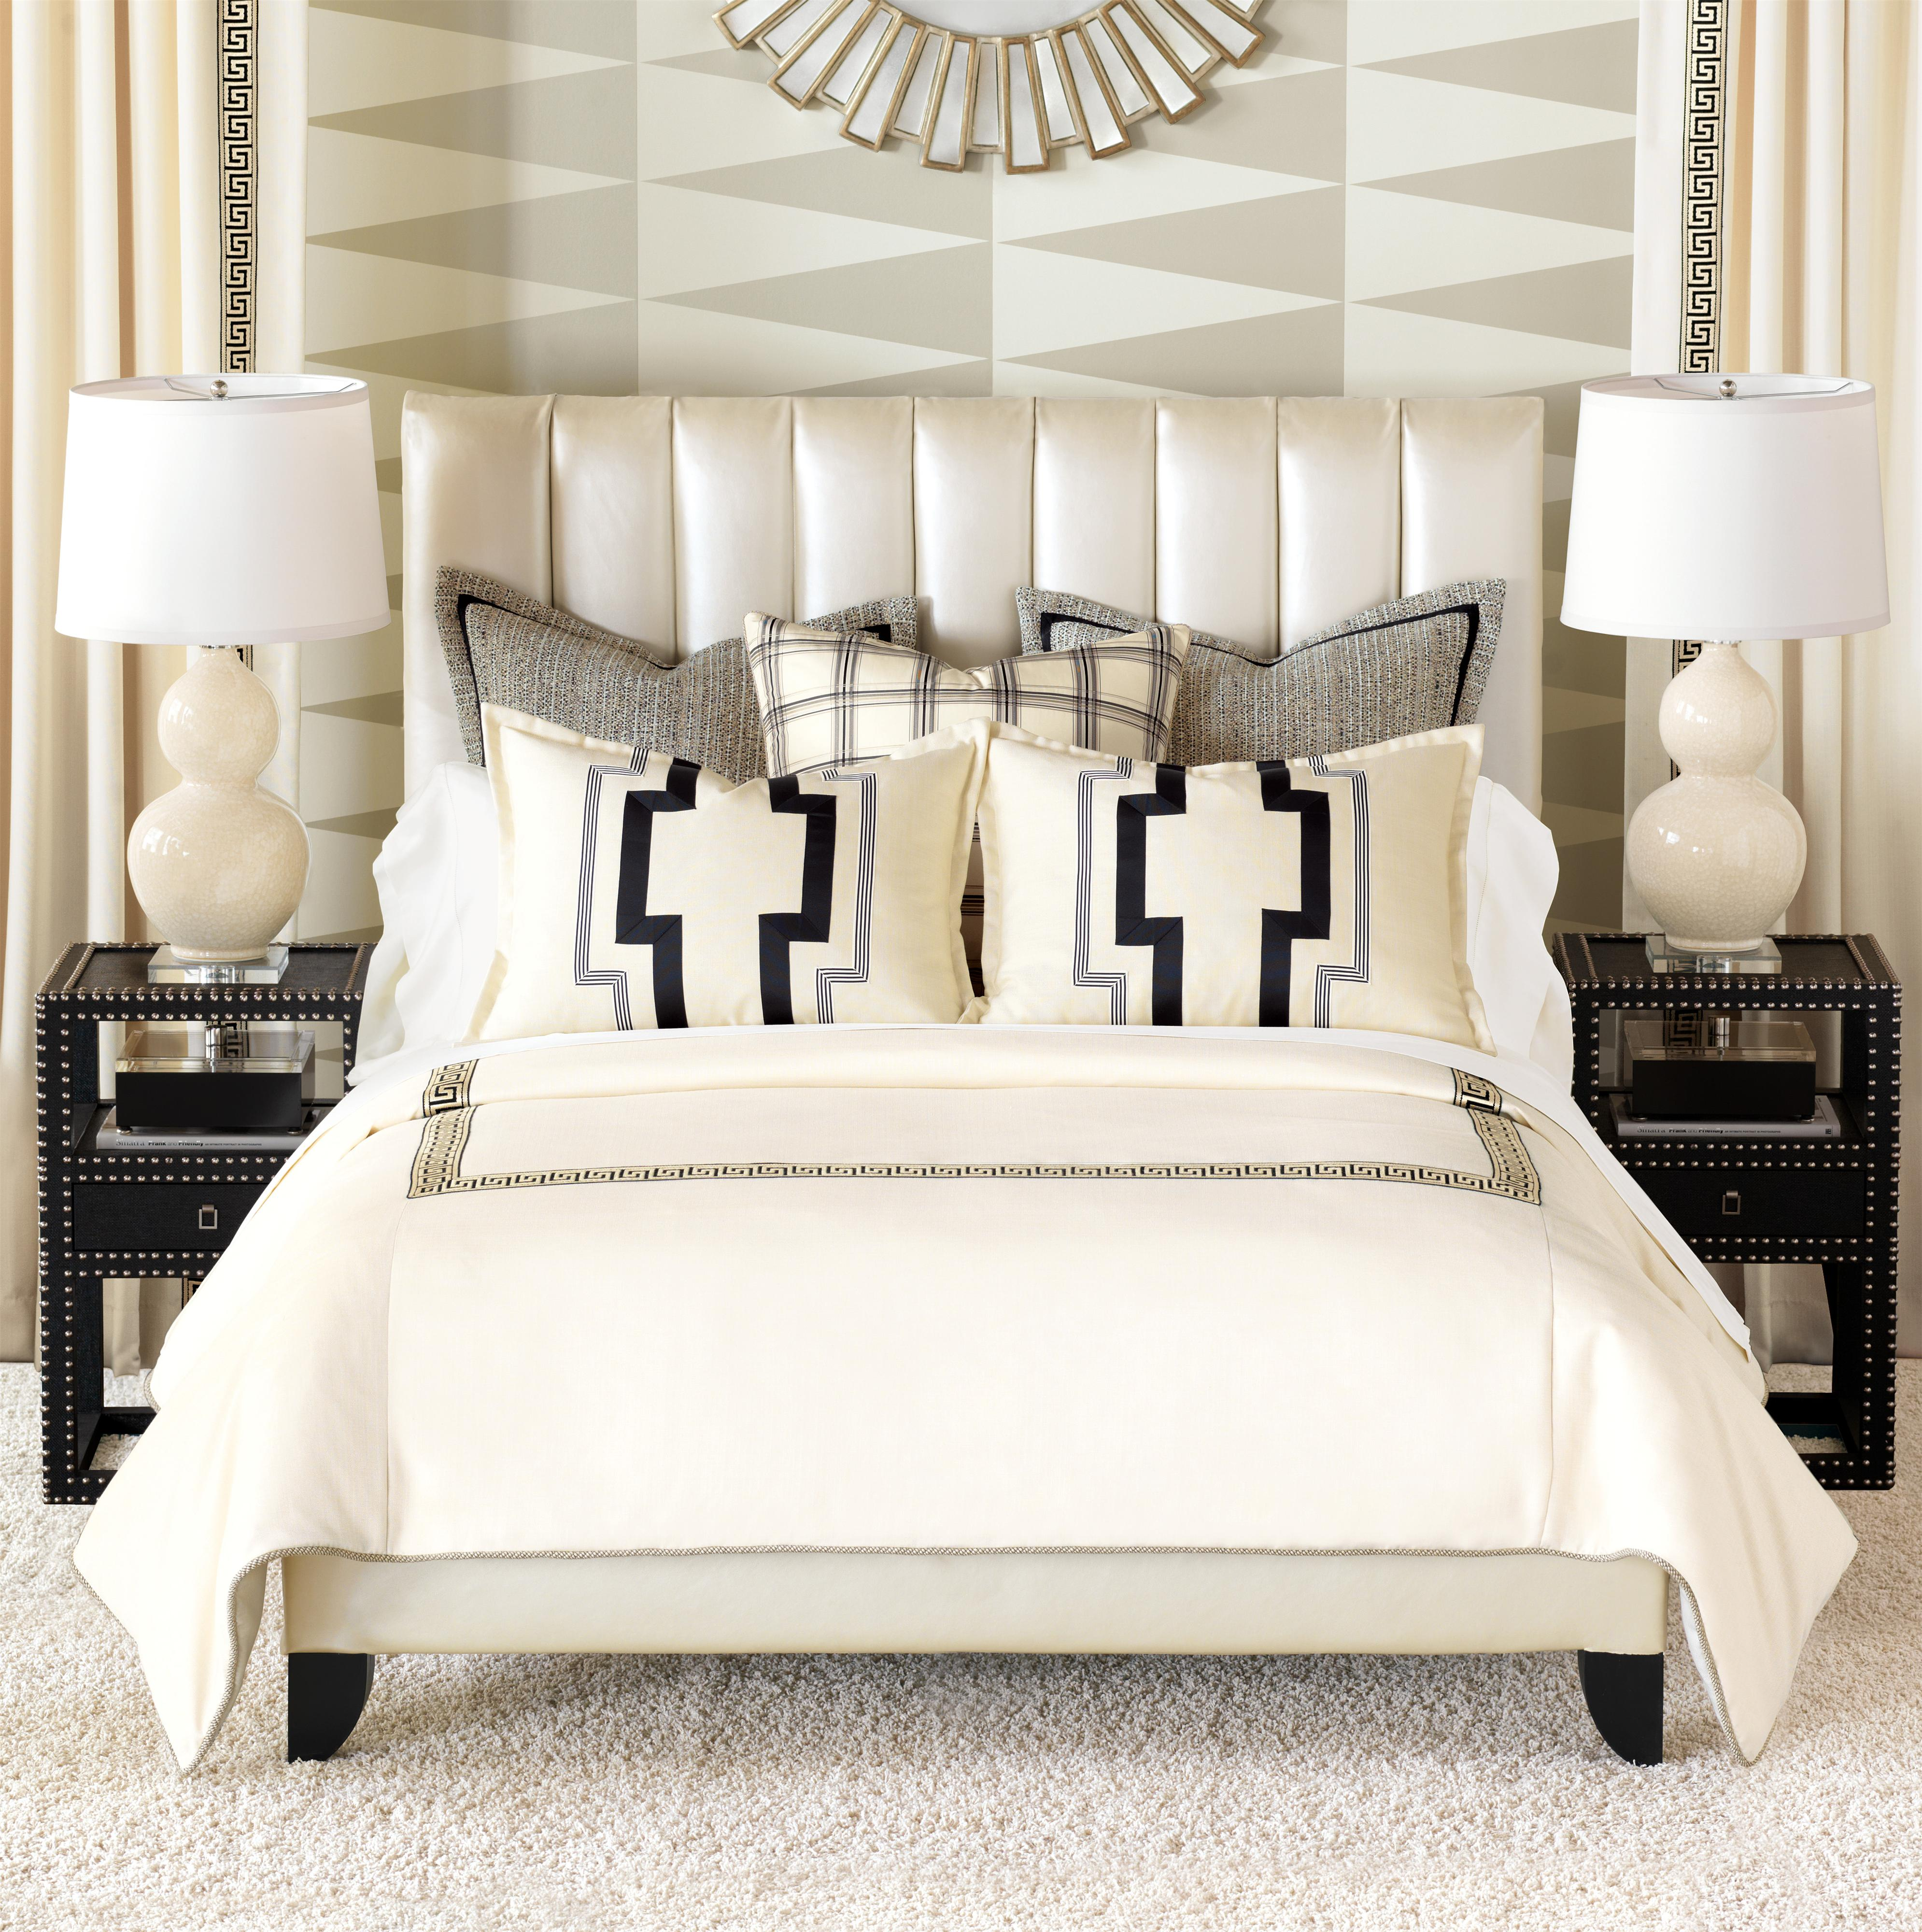 Abernathy Cal King Bed Skirt by Eastern Accents at Alison Craig Home Furnishings